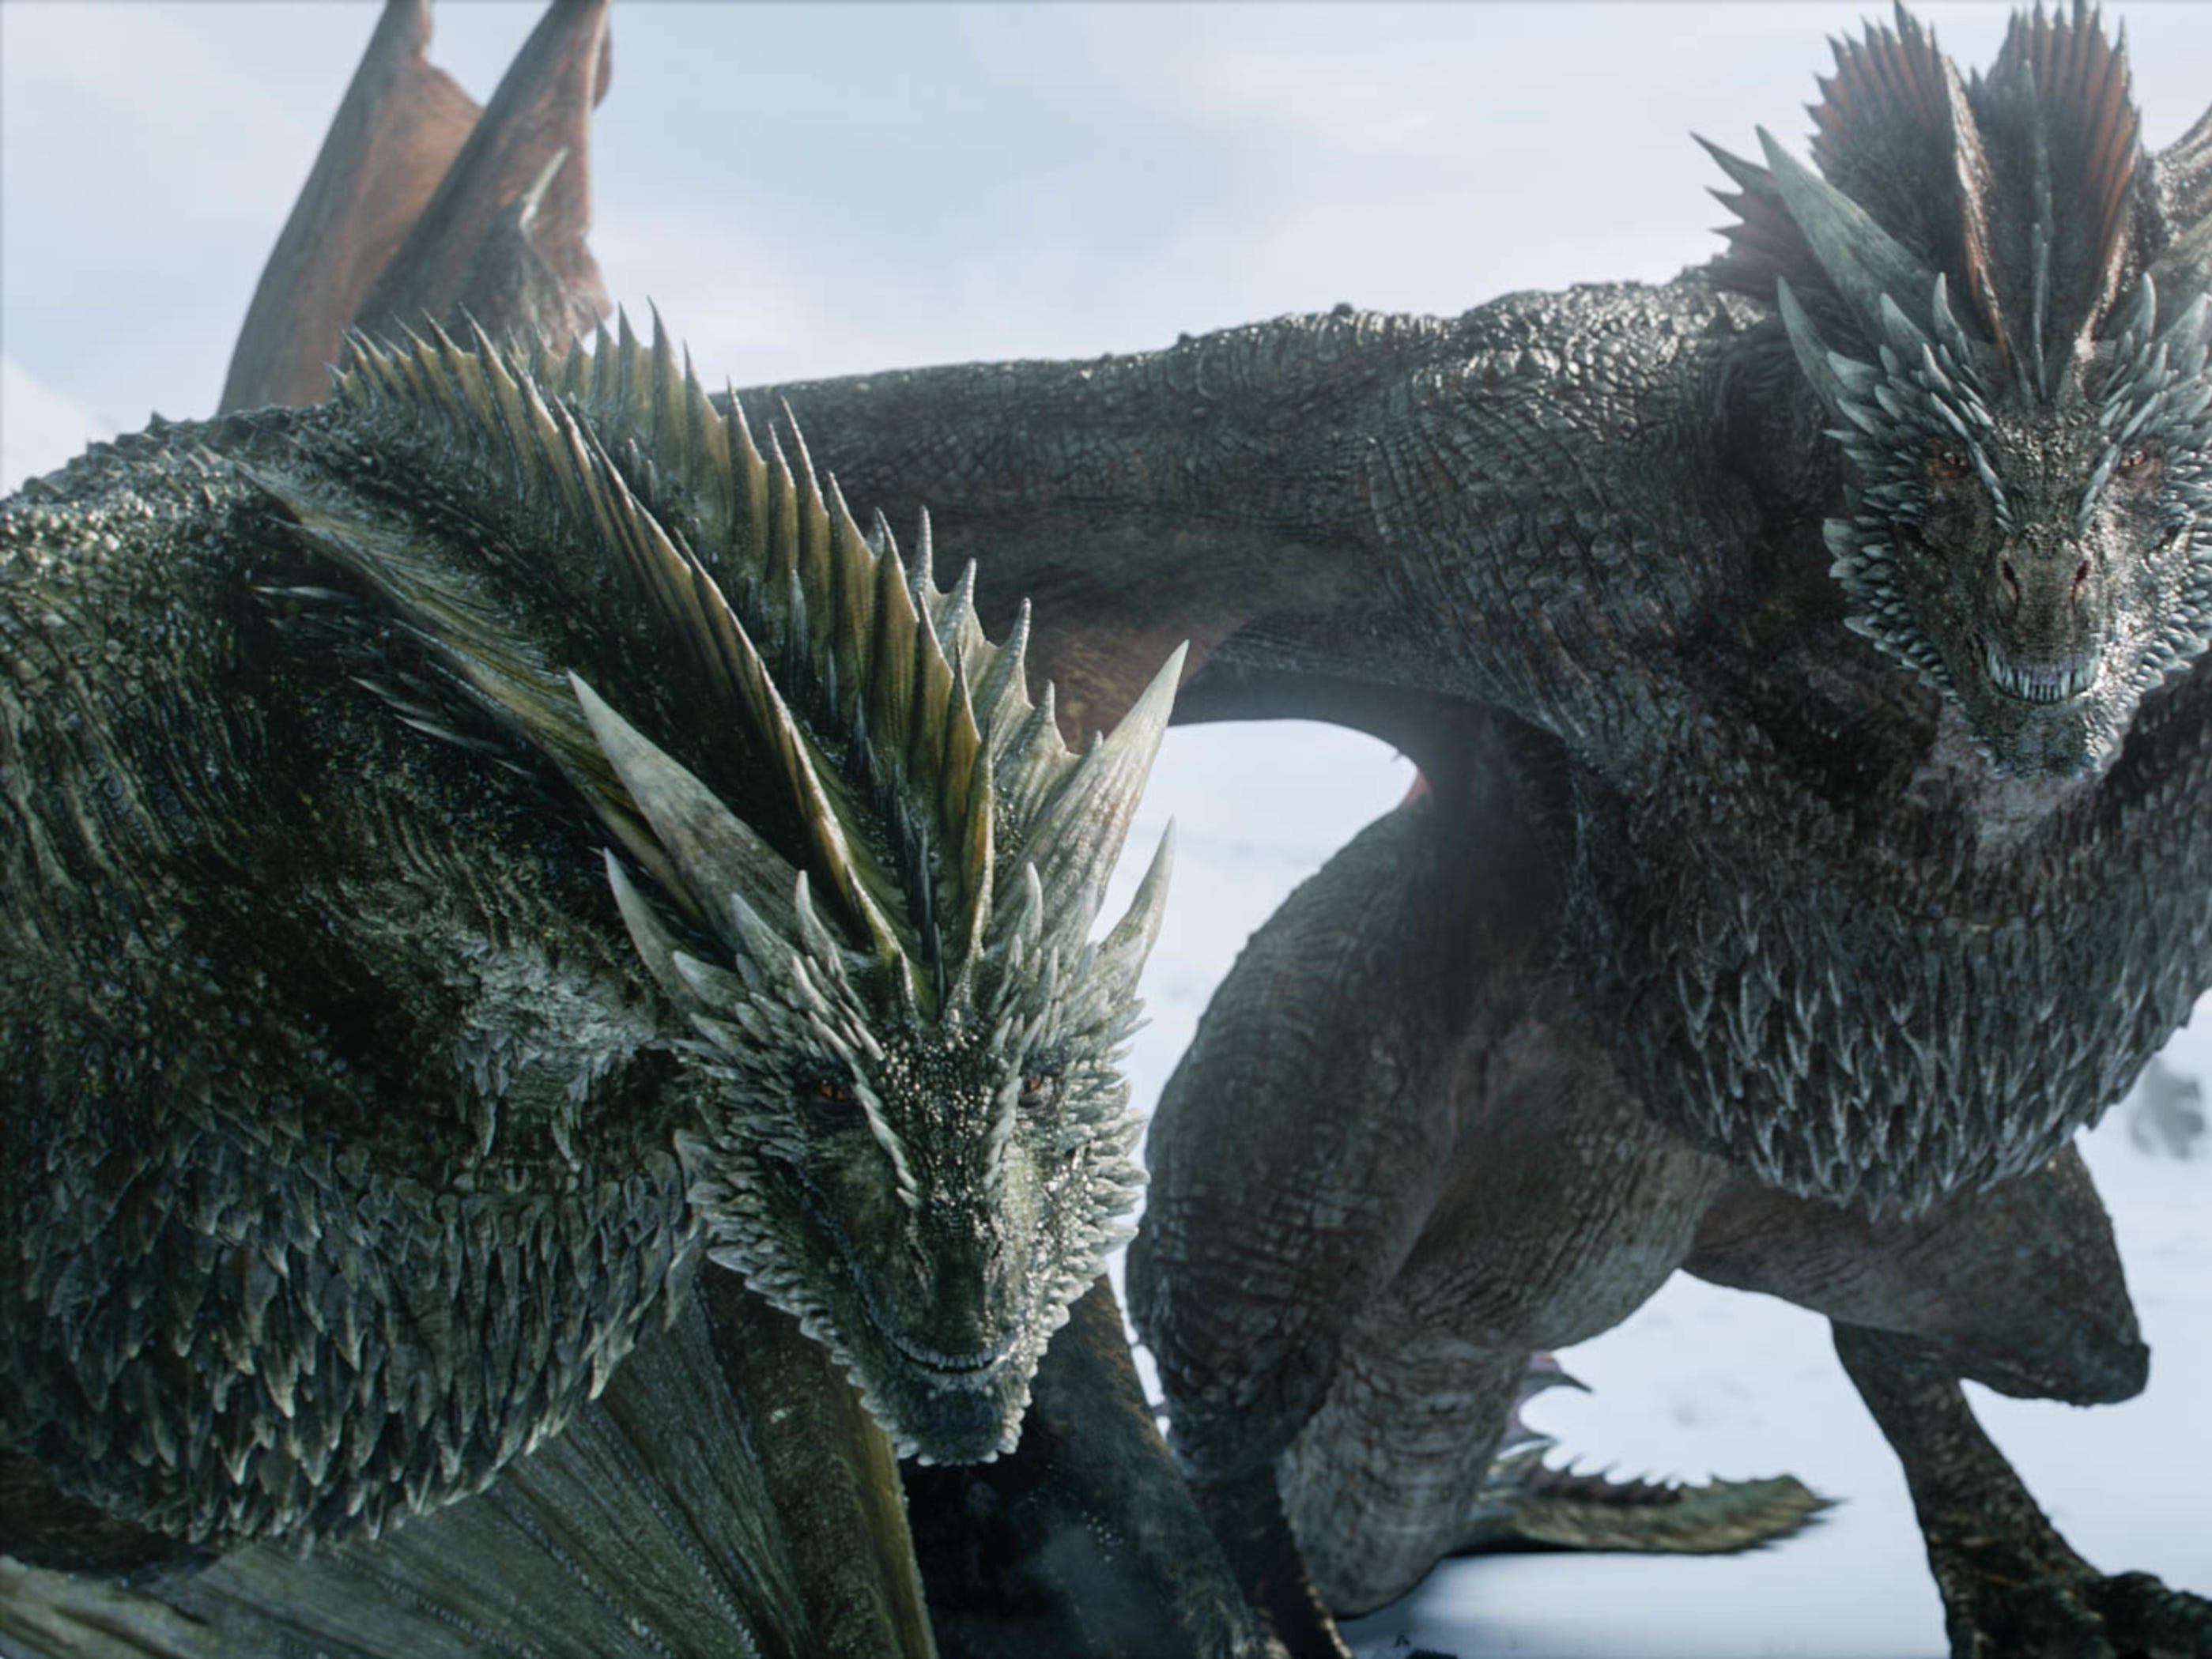 Daenerys' dragons in the north.